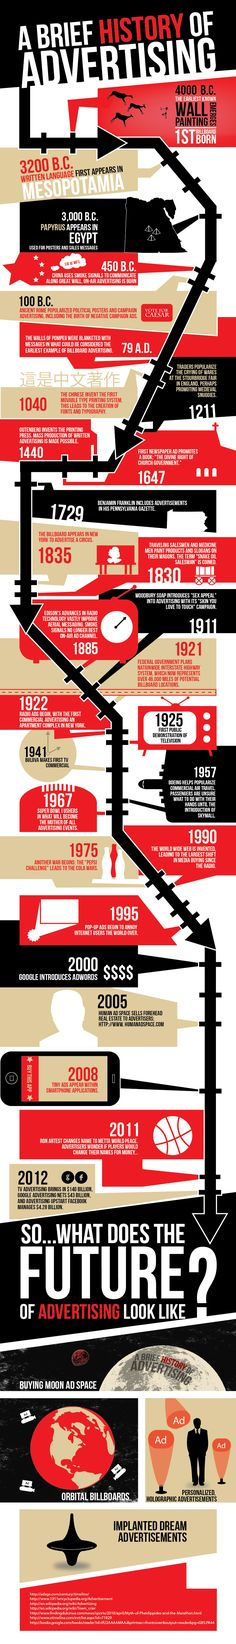 Advertising: A Brief History #advertising #advertise #epub #emarketing #digital #emarketing #ad